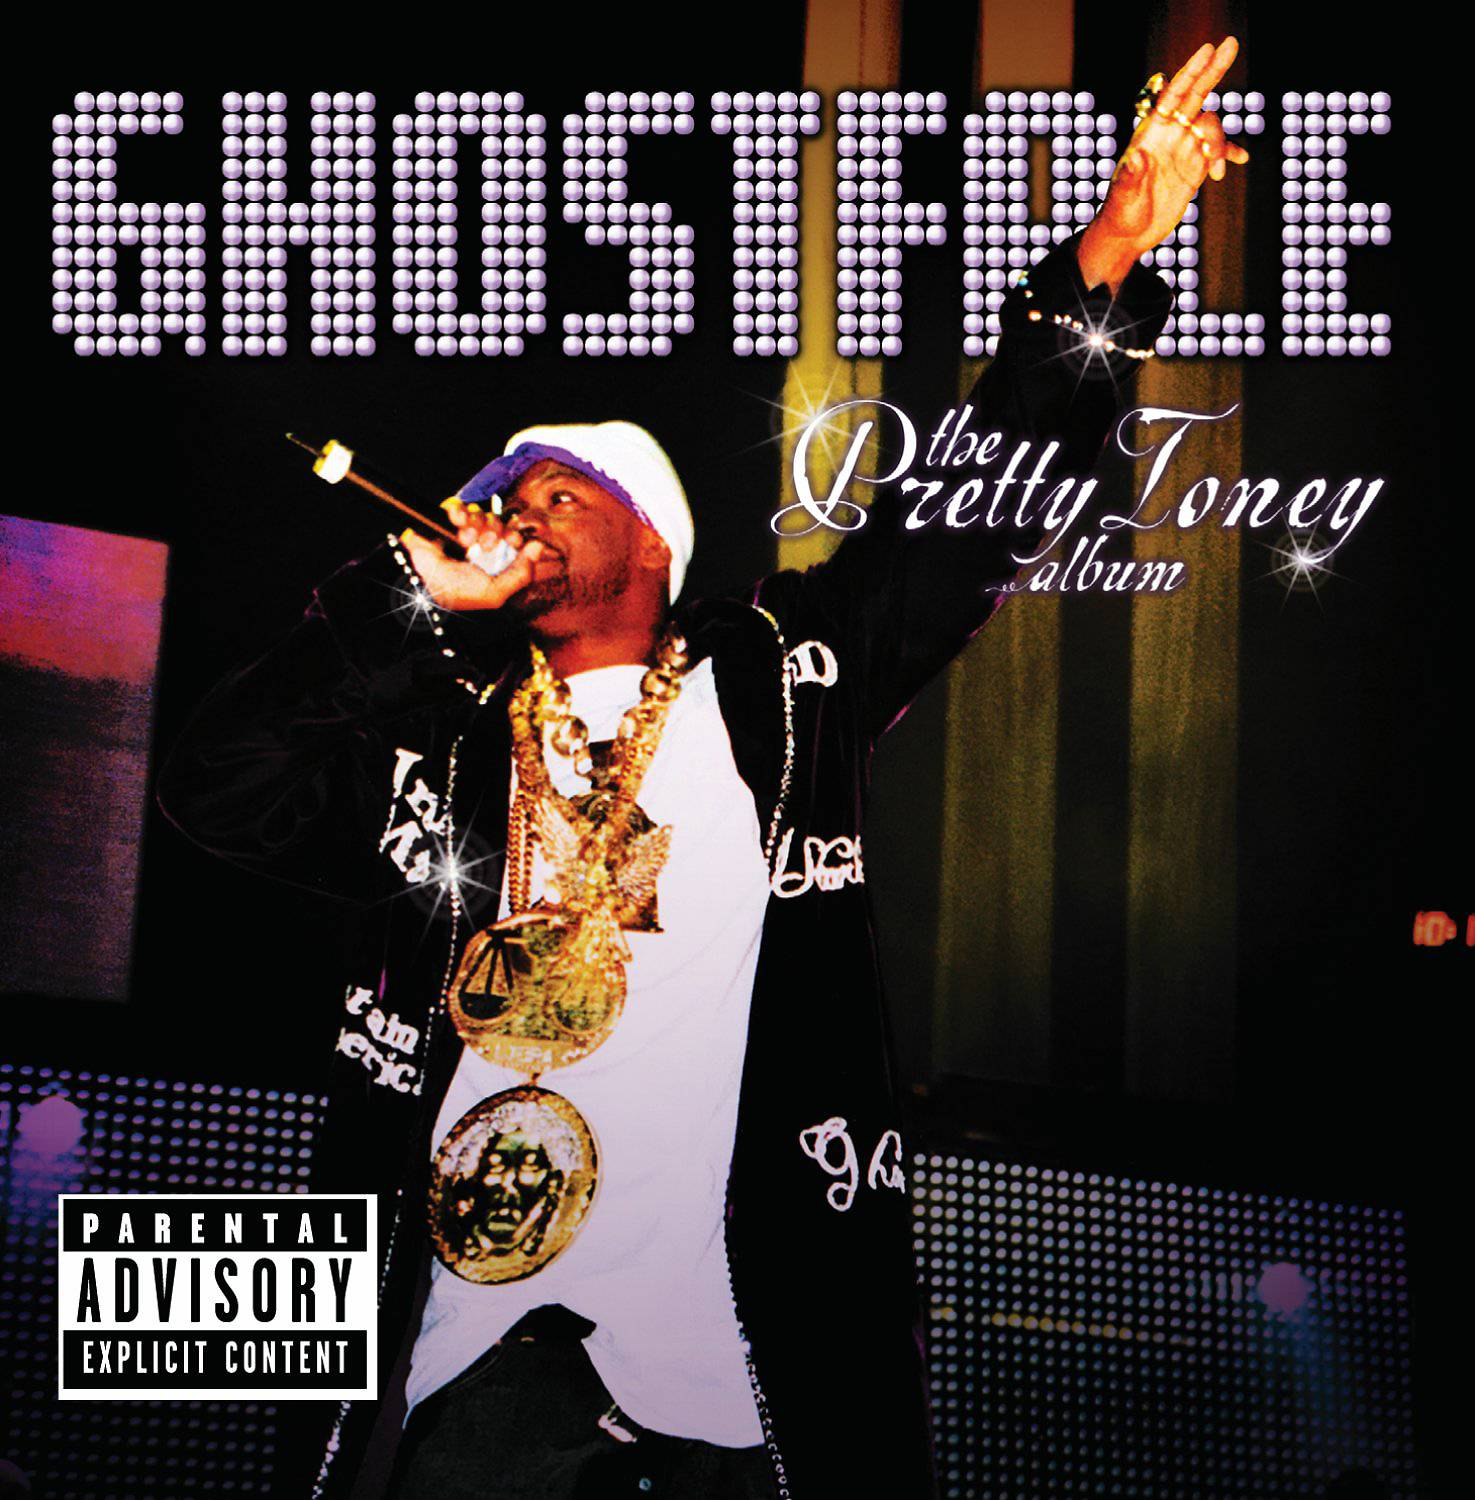 """9. Ghostface Killah ? The Pretty Toney Album (2004) - Is Ghostface the most dependable Wu-Tang alum? Easily. Around the time of this release, he was at the peak of his mainstream powers; an artist that found the perfect balance between critical darling and everyone's go-to rapper capable of stealing shine from a larger-than-life diva like Beyonc?. It's that push and pull that paces Pretty Toney.Delphonics soul (""""Holla"""") makes nice with rosy R&B (""""Love""""). And Ghostface's stream of consciousness writing punches like the Hit Man Hearns in his early '80s heyday with head spinning lines like, """"I'm a family man, Clan mixed with Theodore/My boots hang over the telephone wires on Broadway/Word to Medlife, Tony got insurance on his mic/Smoke mad sh-t and still got endurance when he fight..."""" (Photo: Def Jam)"""